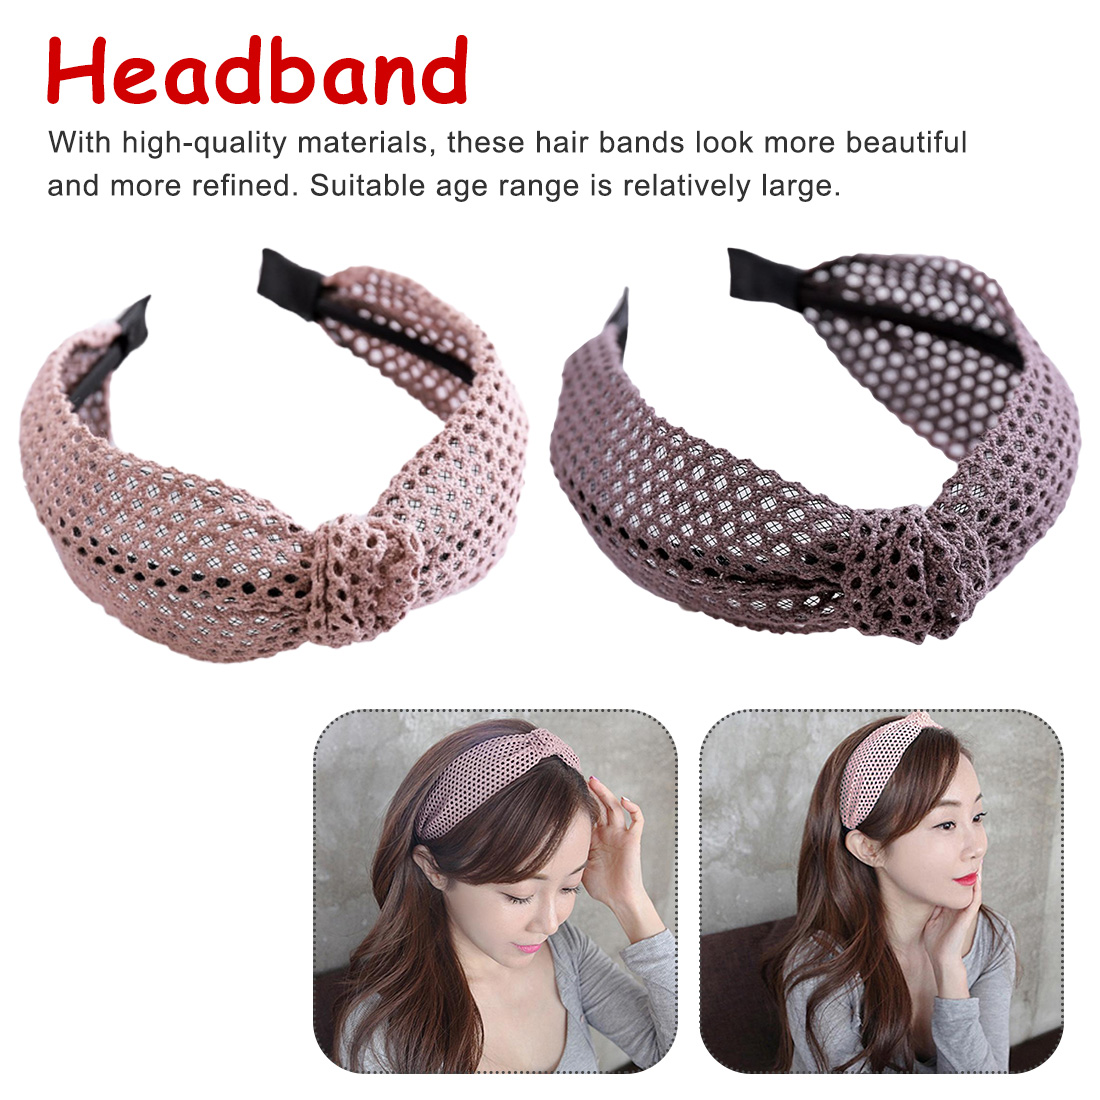 Headband Bohemian Womens Simple Sweet Headbands For Women 2019 Decoration Fabric Scarf Girls Accesorios Cross Knot Hair Bands,C